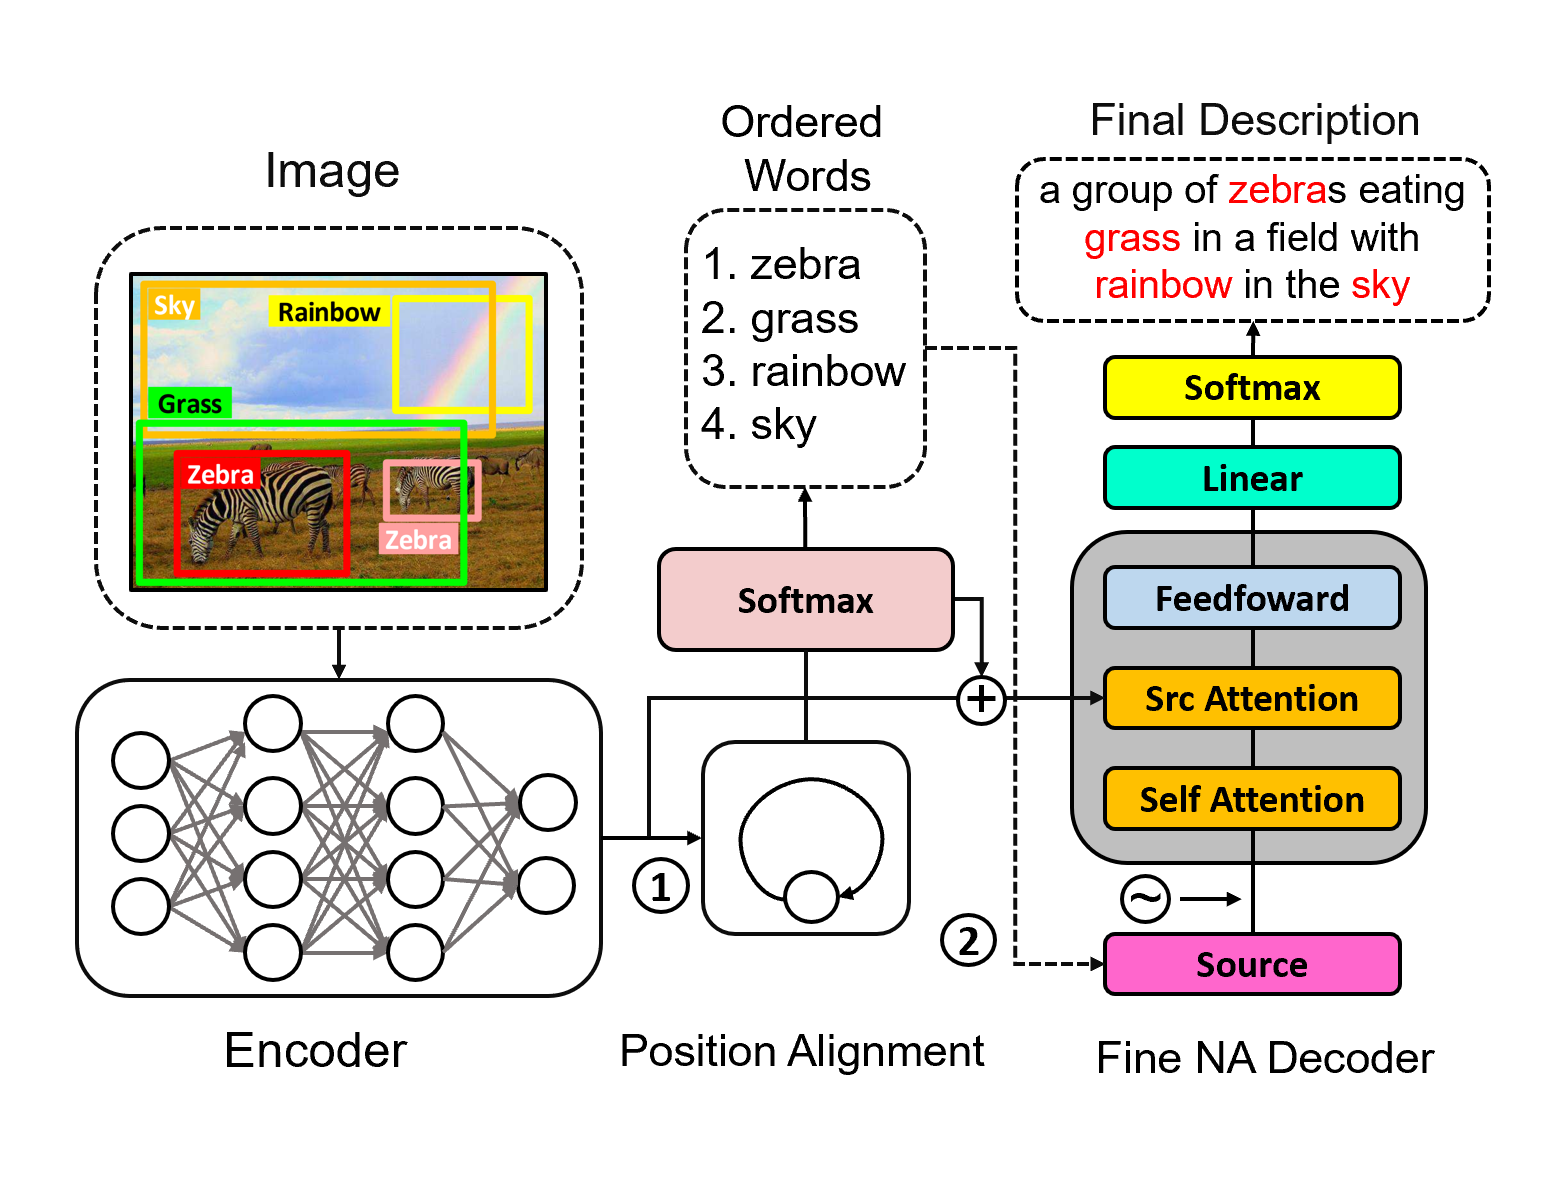 The framework of our proposed NA captioning model. ① Different from general NA decoding models, our model adds a position alignment module between the image encoder module and sentence decoder module to explicitly construct object and position information. ② For a general NA model, the decoder inputs are the copied of source information, but for our model, the decoder inputs are ordered words with image information.